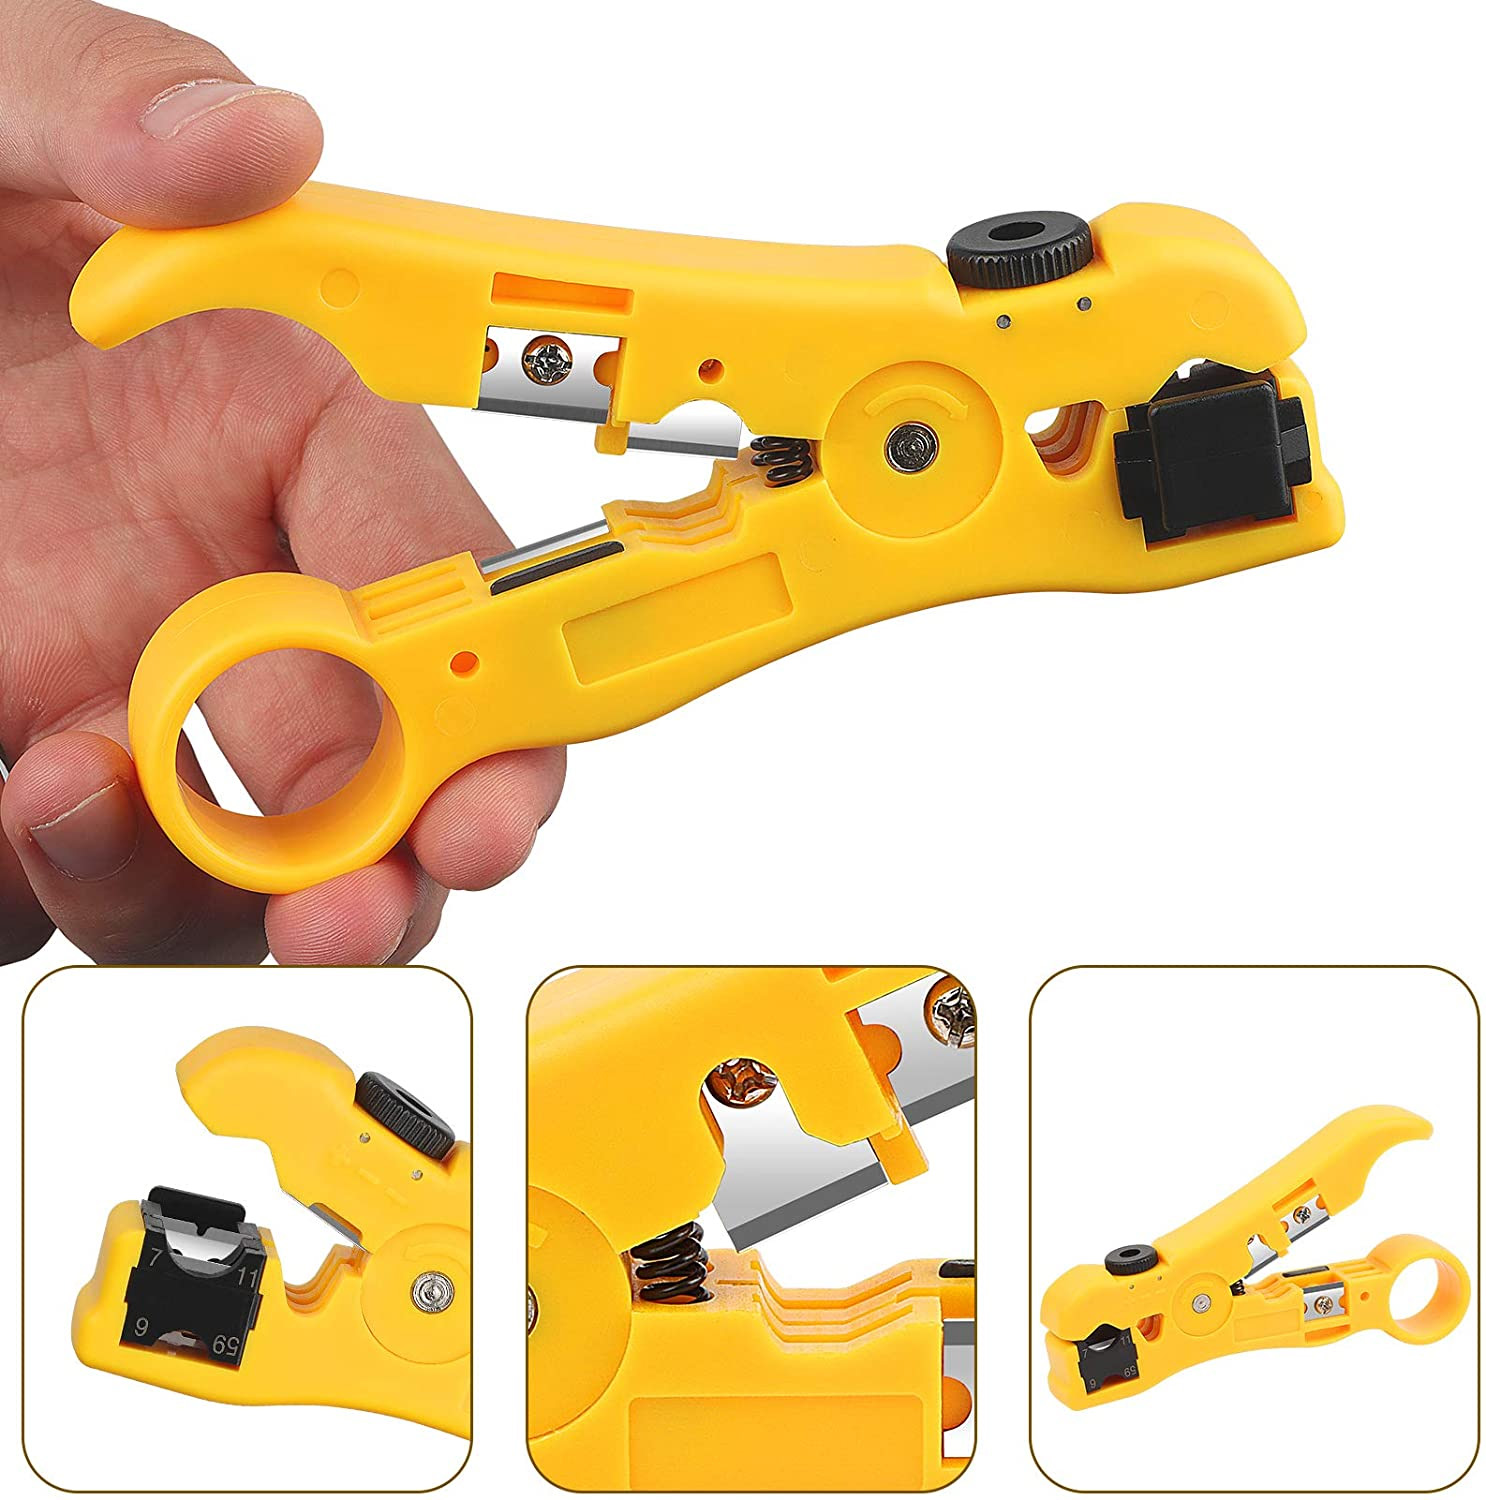 Ekavir Universal Wire Cable Cutter Stripper Tool for Coax Cable RG59 RG6 RG7/RG11 Round Network Cable CAT5 CAT6 and Flat Telephone Cable Yellow